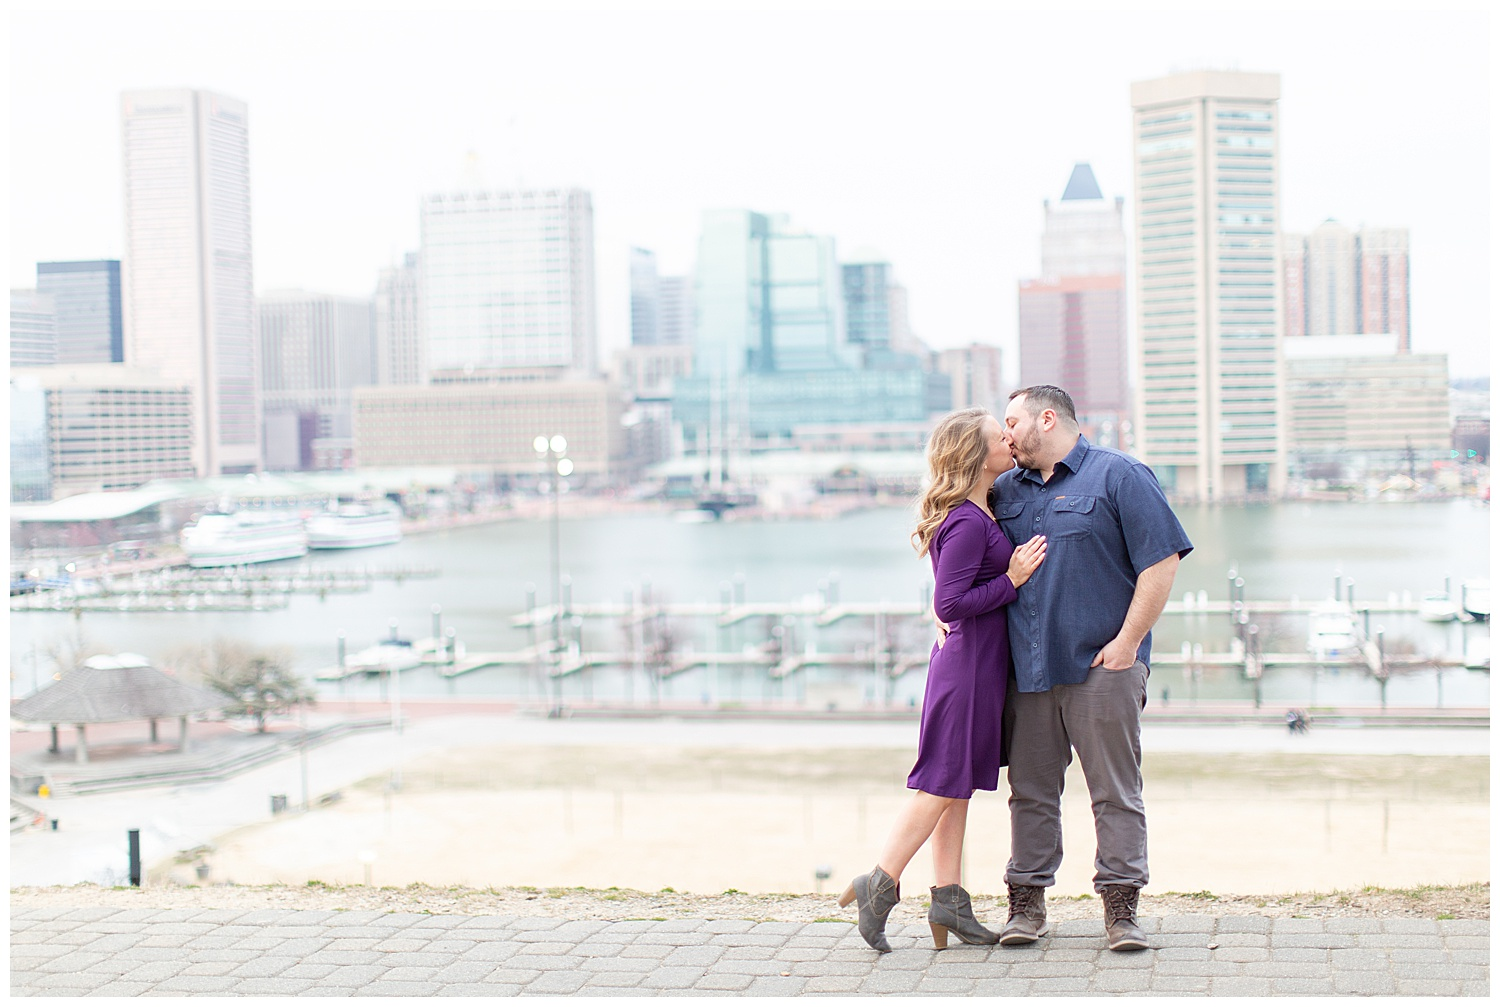 emily-belson-photography-baltimore-engagement-06.jpg